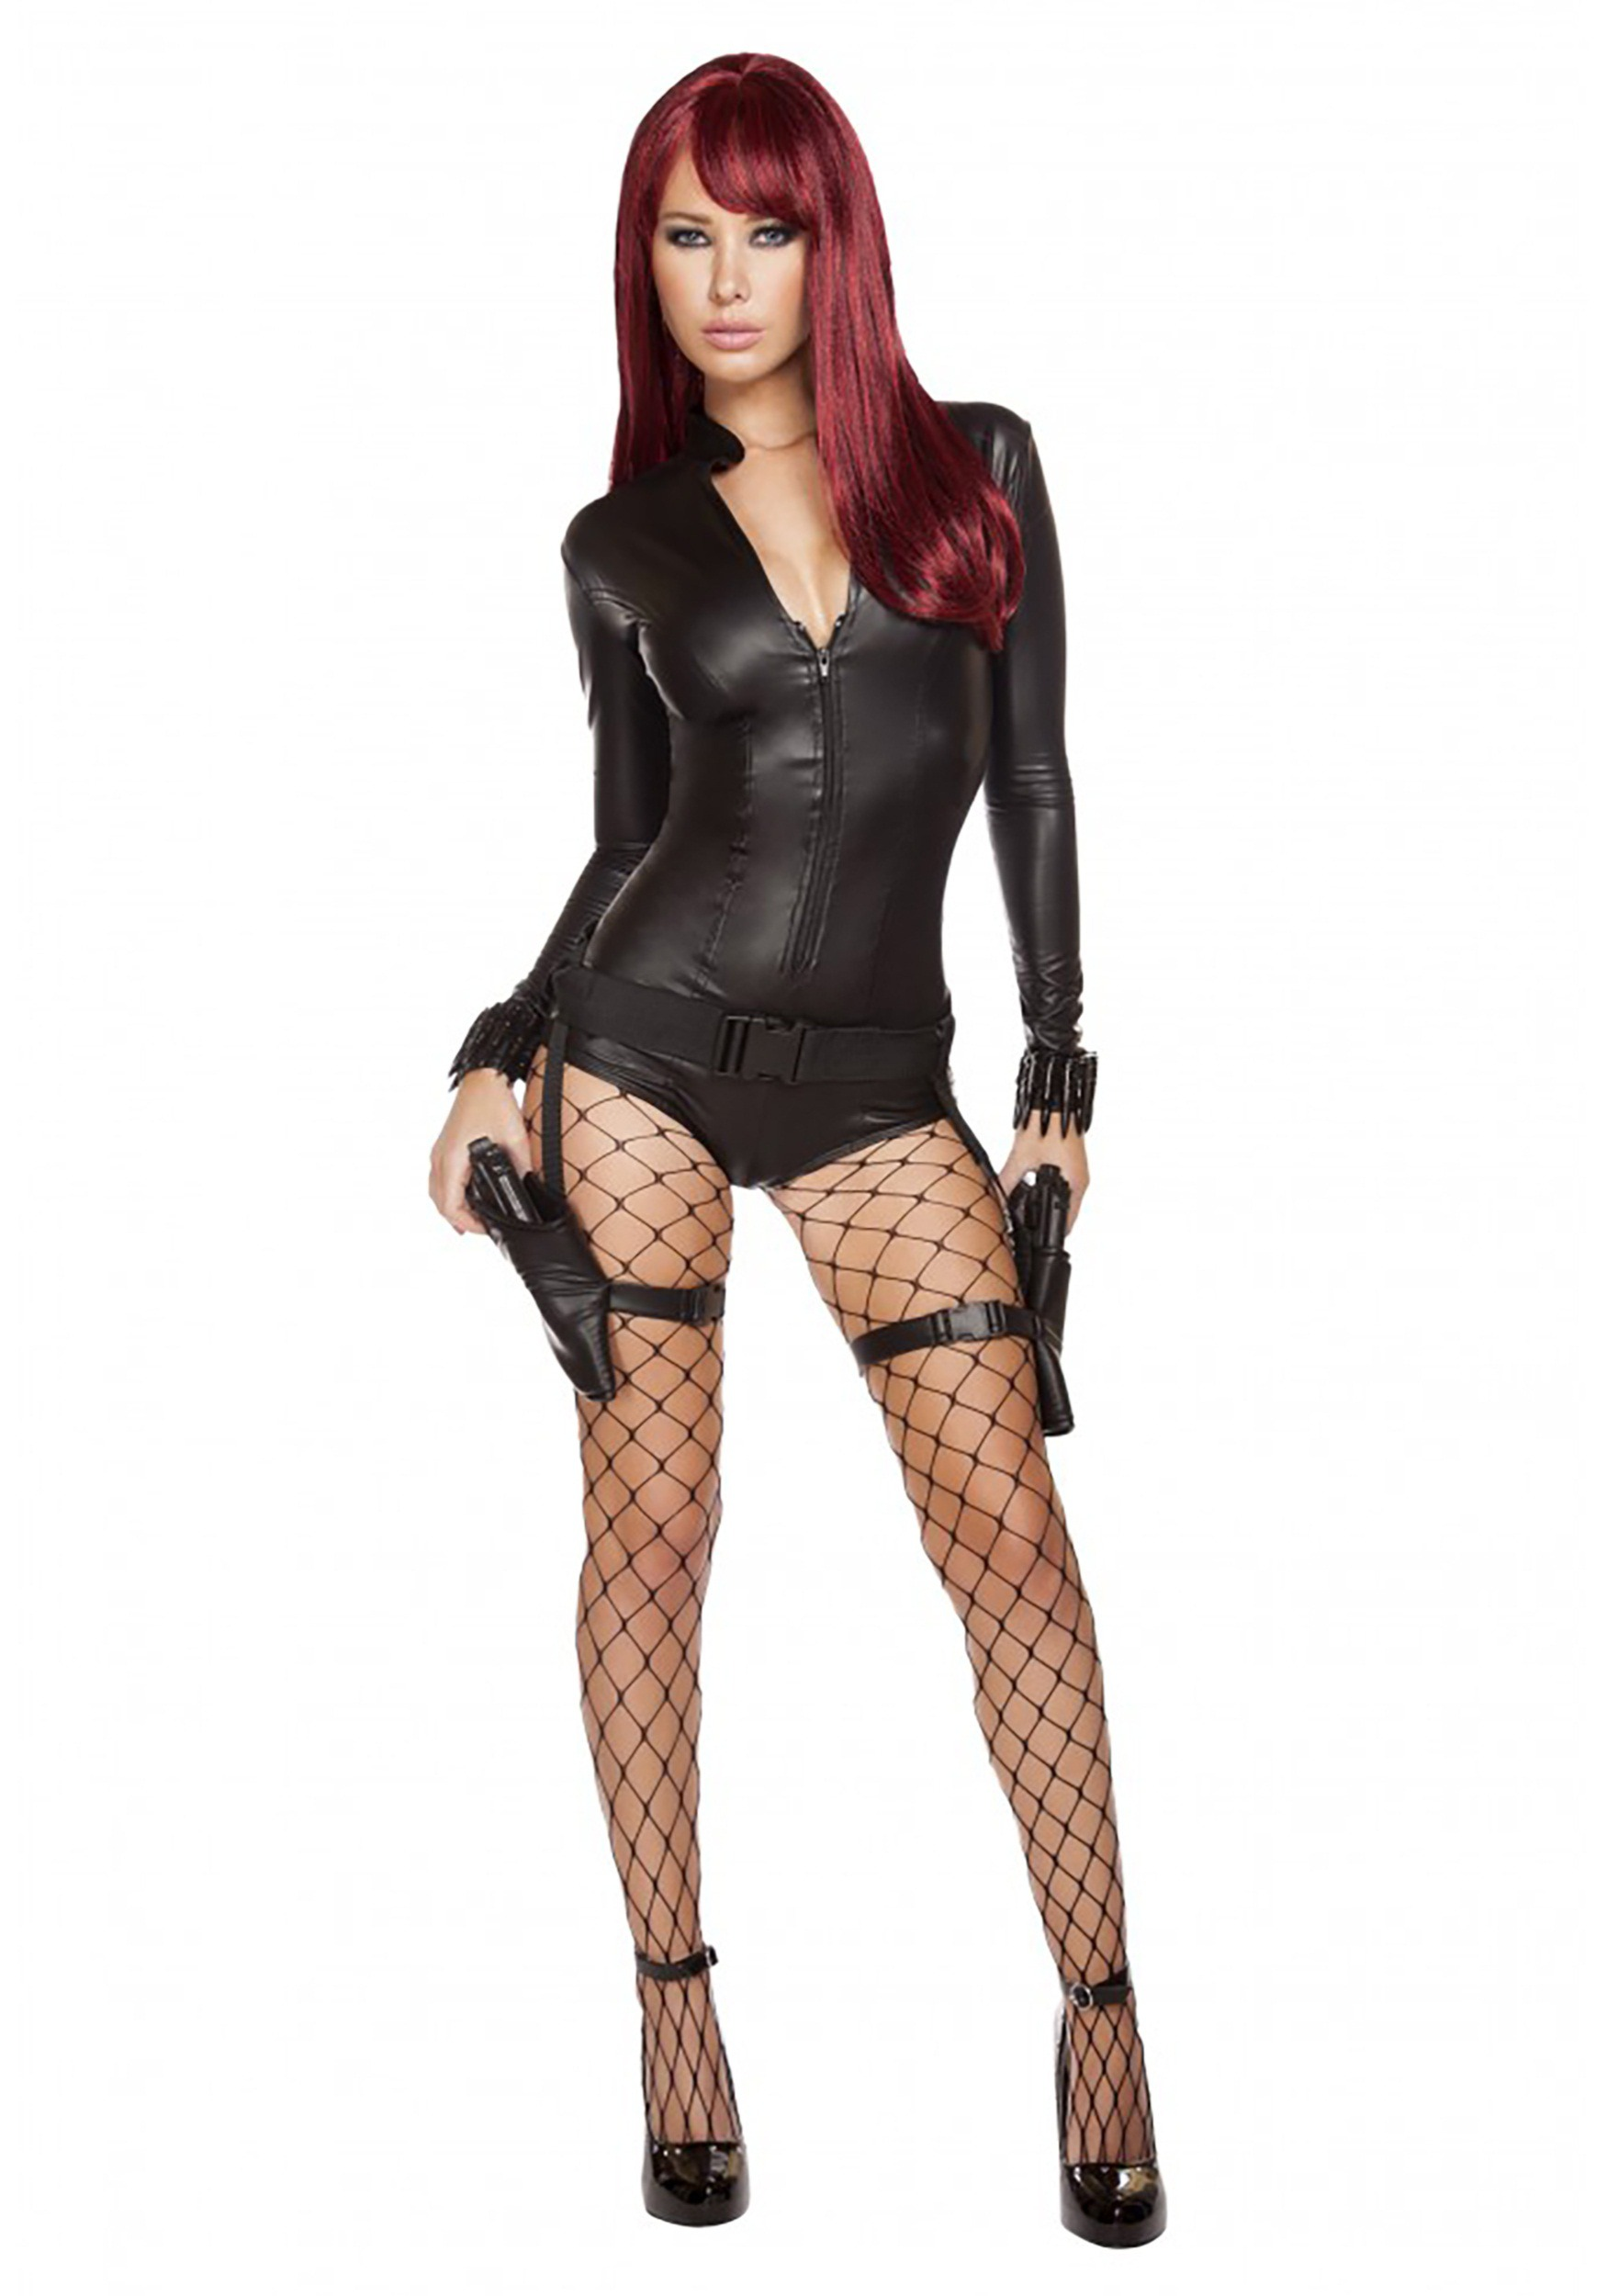 Women's Hot Hitwoman Romper Costume